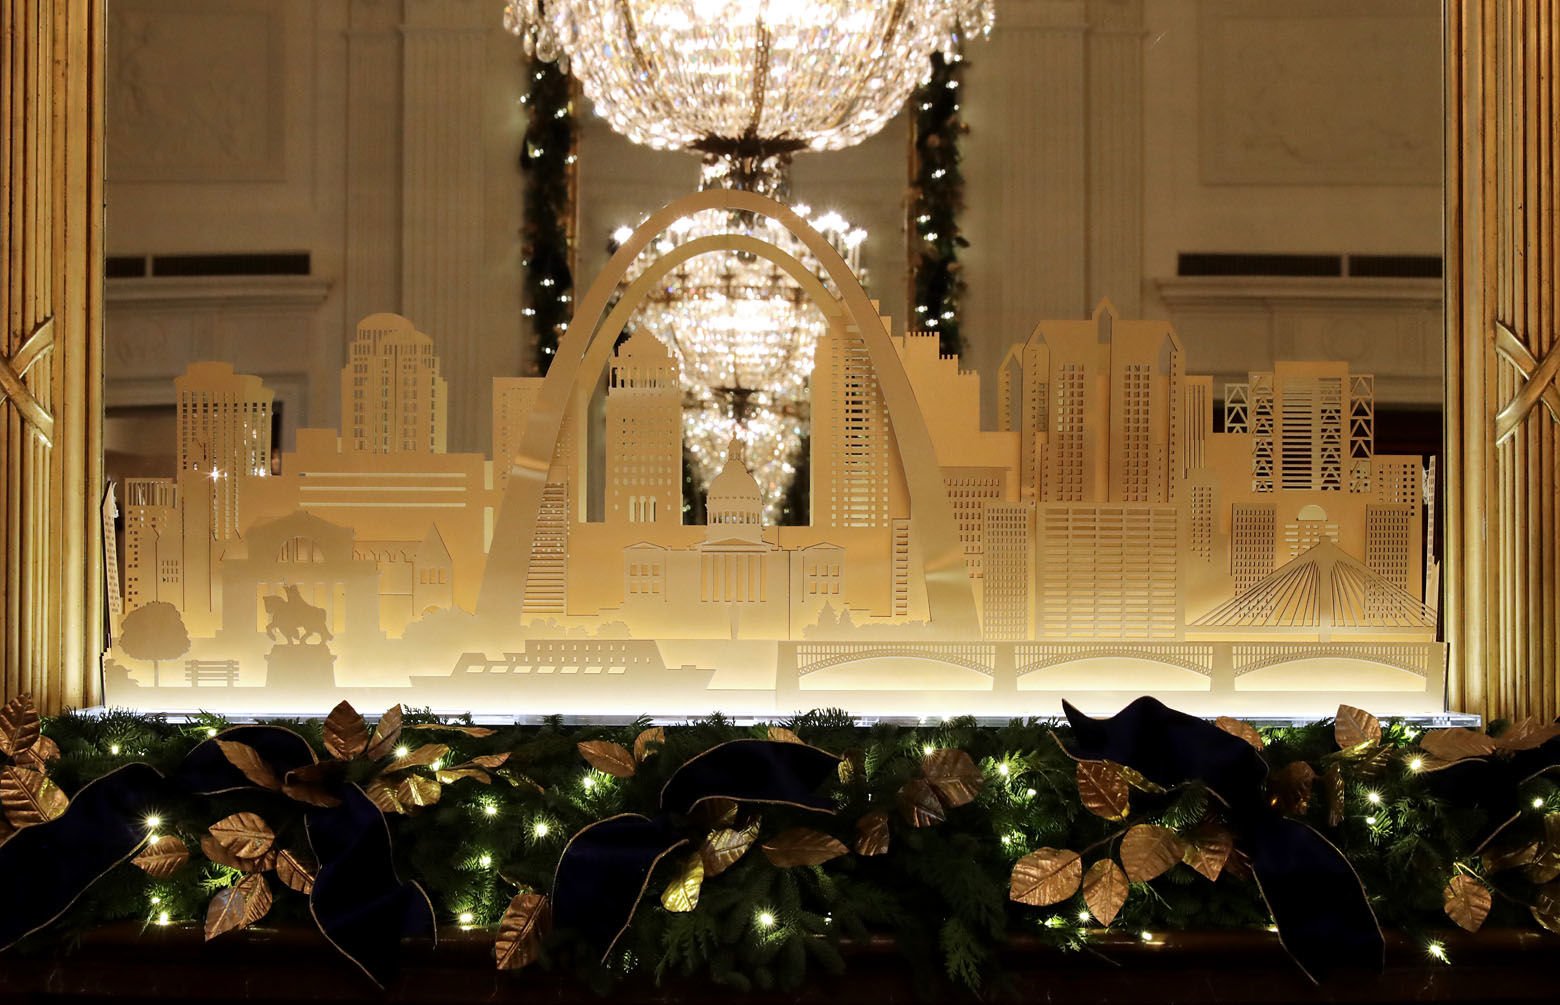 WASHINGTON, DC - NOVEMBER 26: Holiday decorations in the East Room celebrate American architecture and design with a custom mantelpiece of the St. Louis skyline at the White House November 26, 2018 in Washington, DC. The 2018 theme of the White House holiday decorations is 'American Treasures,' and features patriotic displays highlighting the country's 'unique heritage.' The White House expects to host 100 open houses and more than 30,000 guests who will tour the topiary trees, architectural models of major U.S. cities, the Gold Star family tree and national monuments in gingerbread. (Photo by Chip Somodevilla/Getty Images)